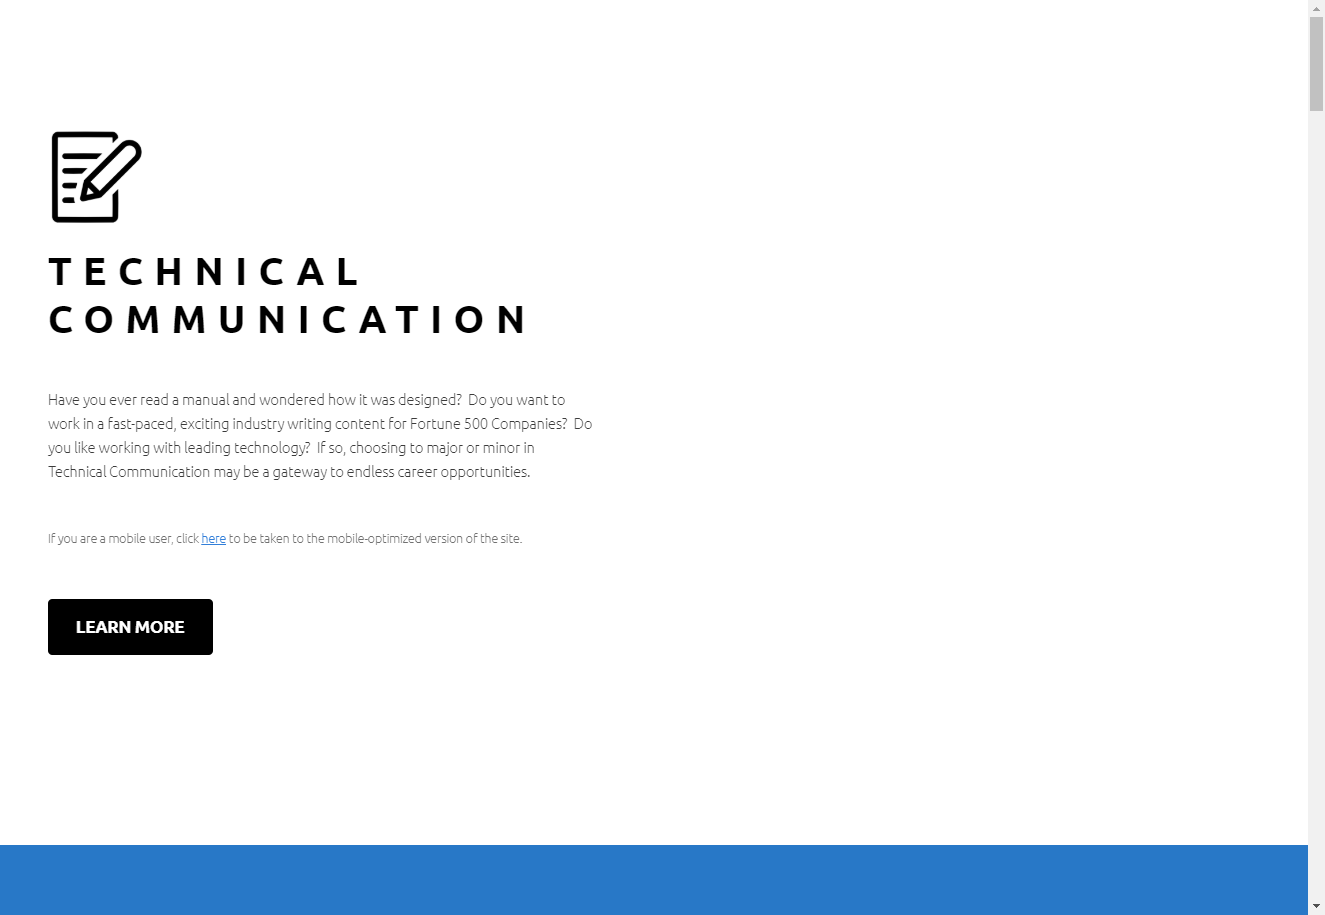 Aspects of Technical Communication